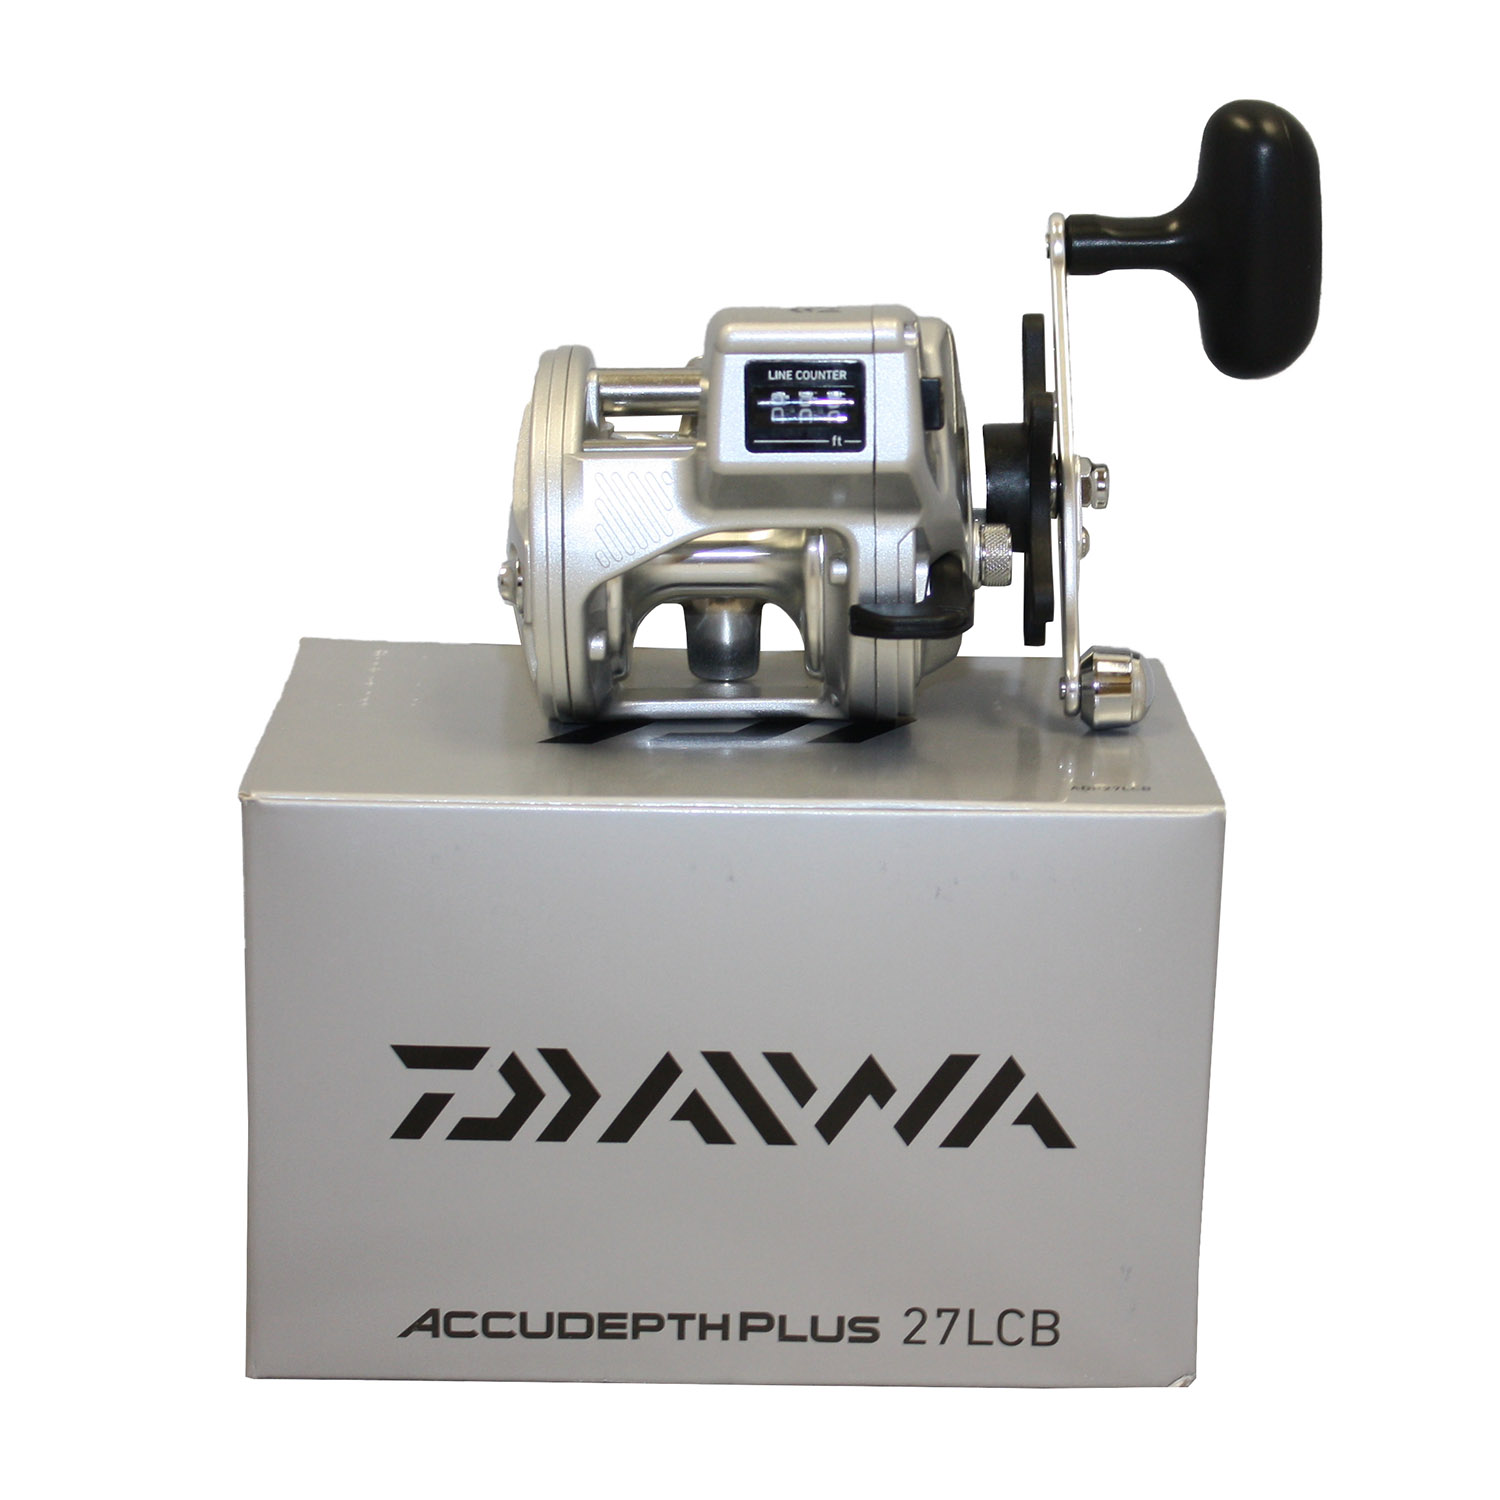 Daiwa Accudepth Plus B Line Counter Reel 1bb 14 300 4 2 1